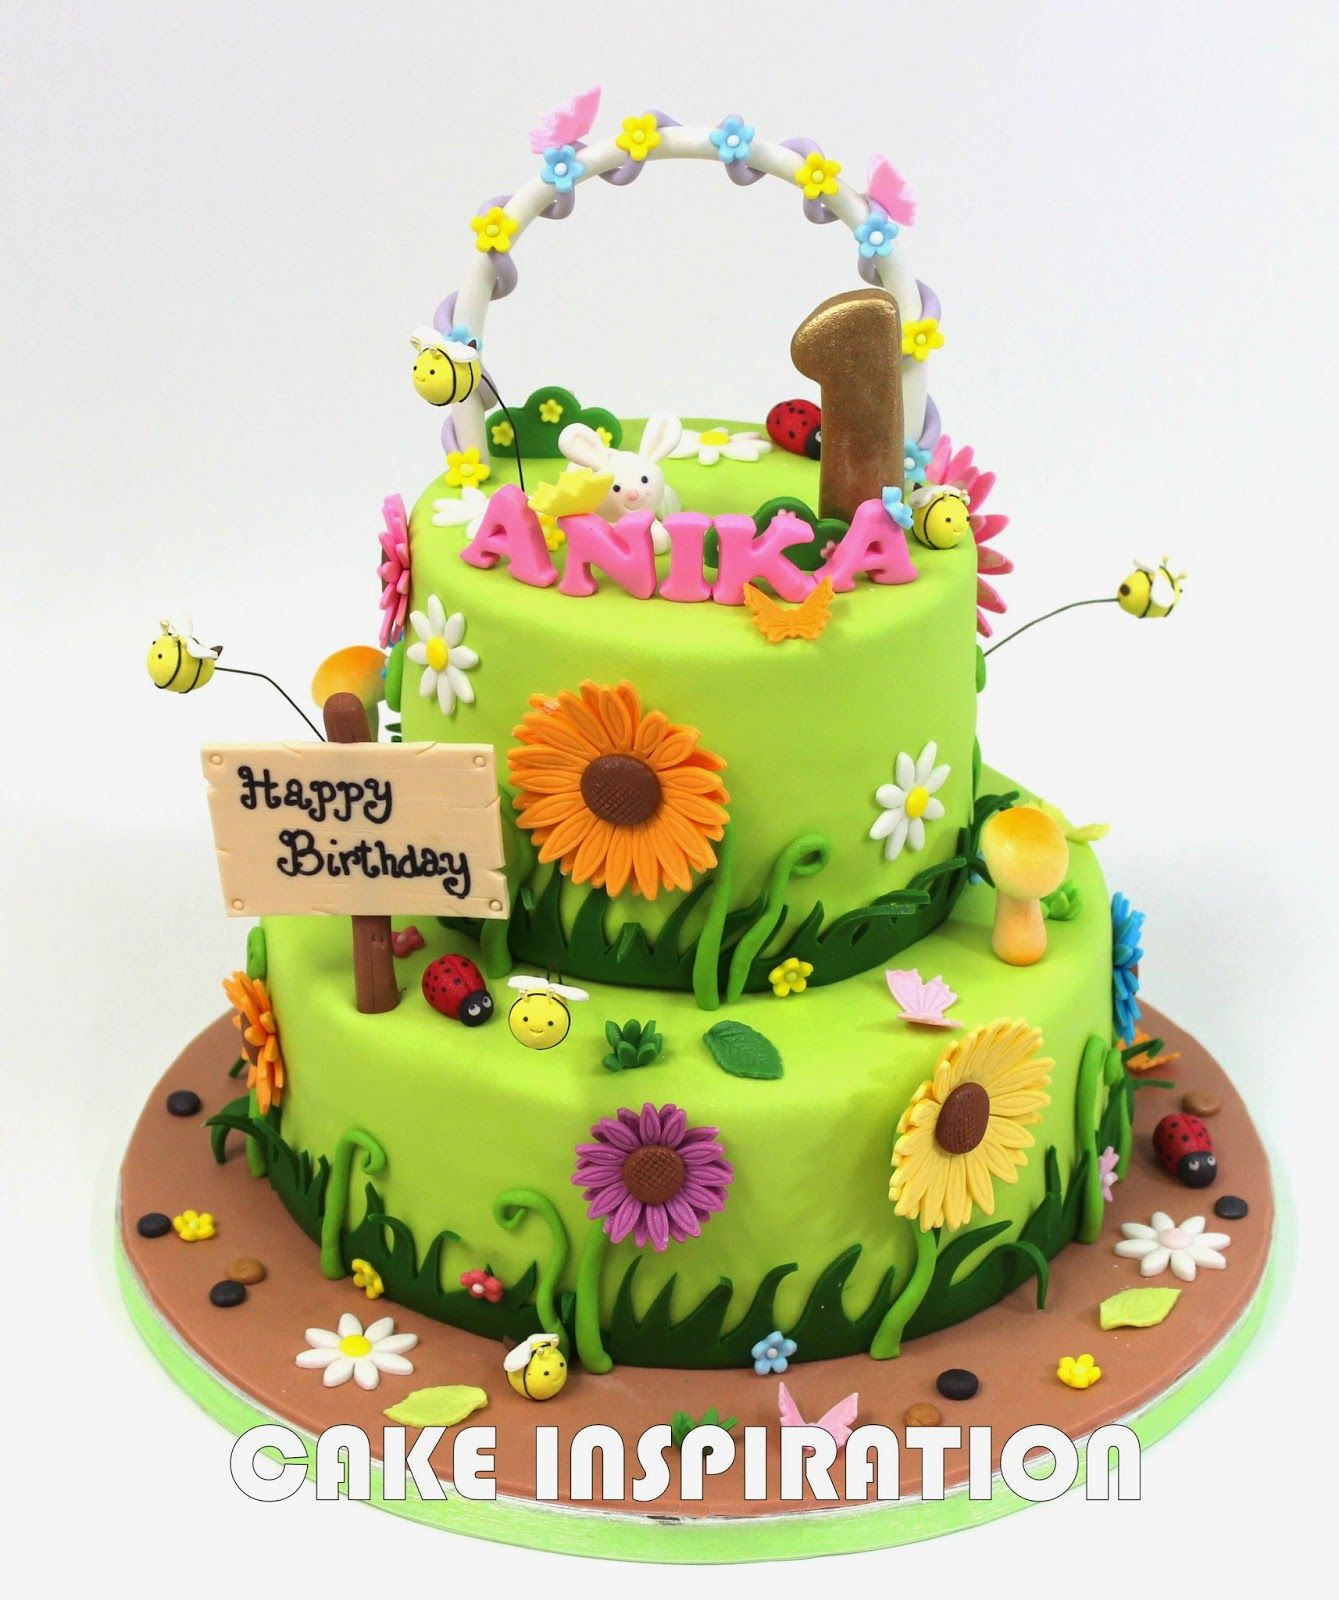 GIRL CAKE FLOWERS ANIMALS BUTTERFLIES Google Search Holidays